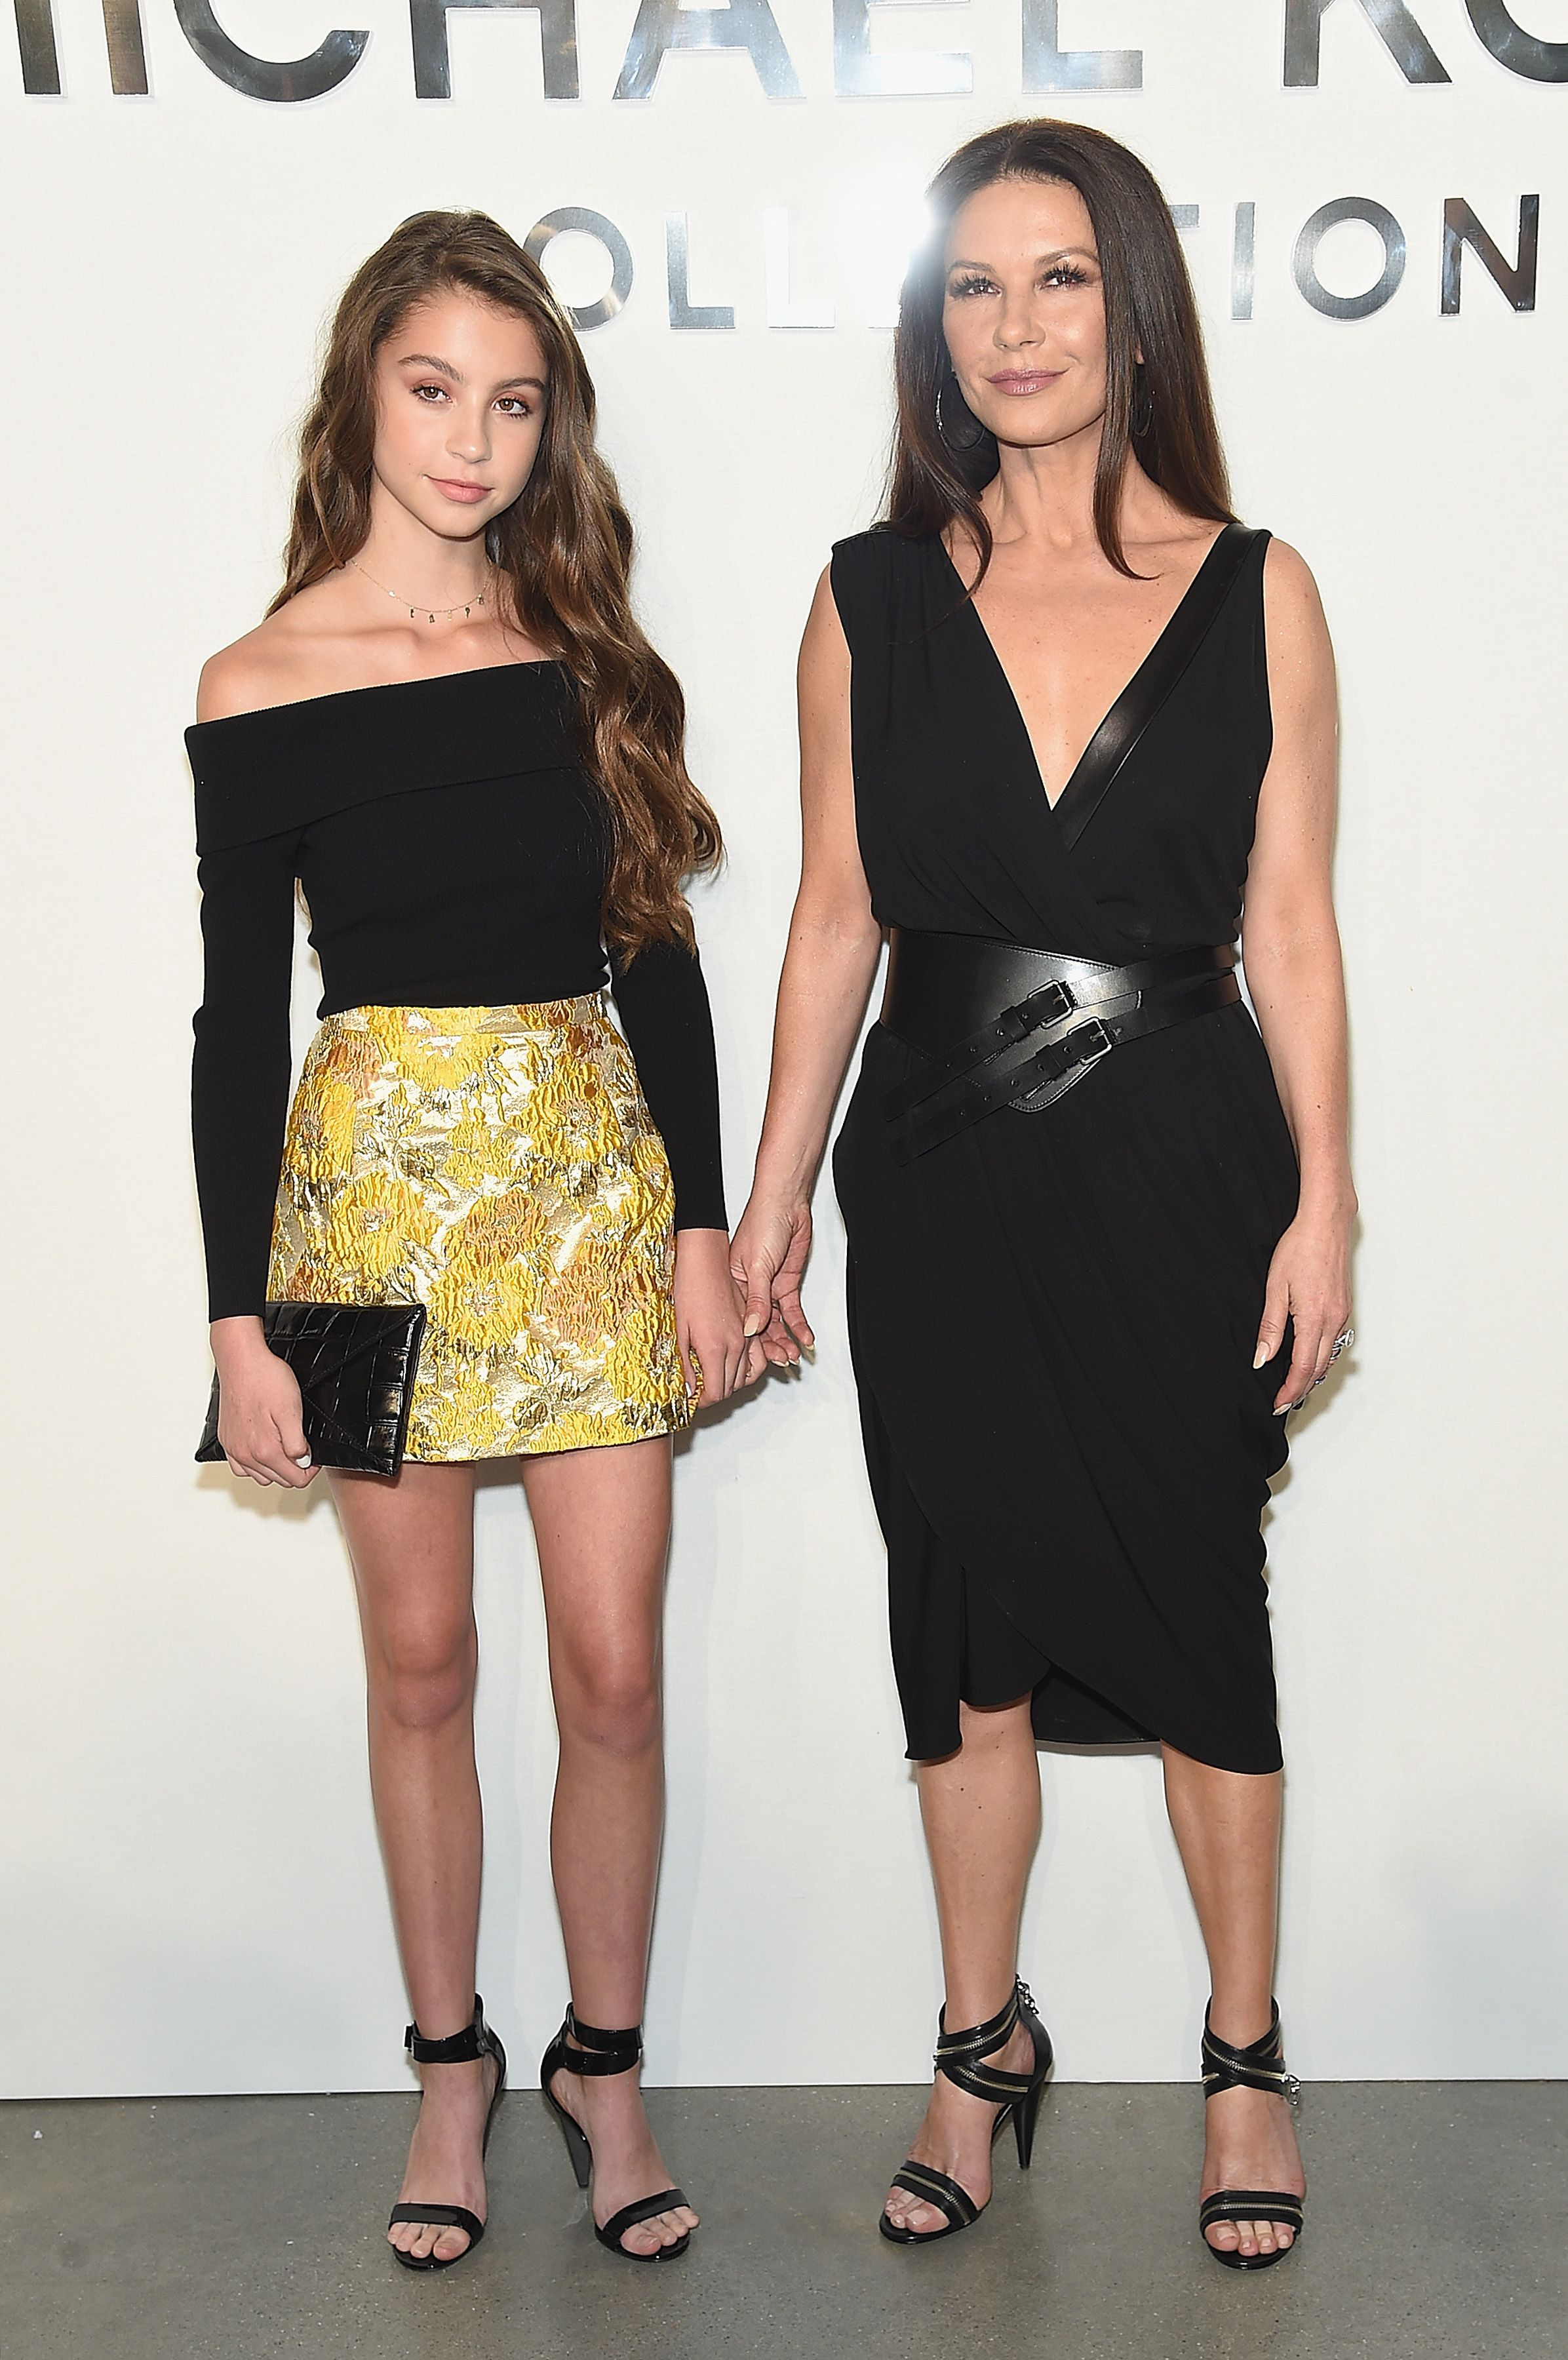 Catherine Zeta-Jones and Carys Zeta Douglas at the Michael Kors Collection Spring 2018 Runway Show at Spring Studios on September 13, 2017   Photo: Getty Images